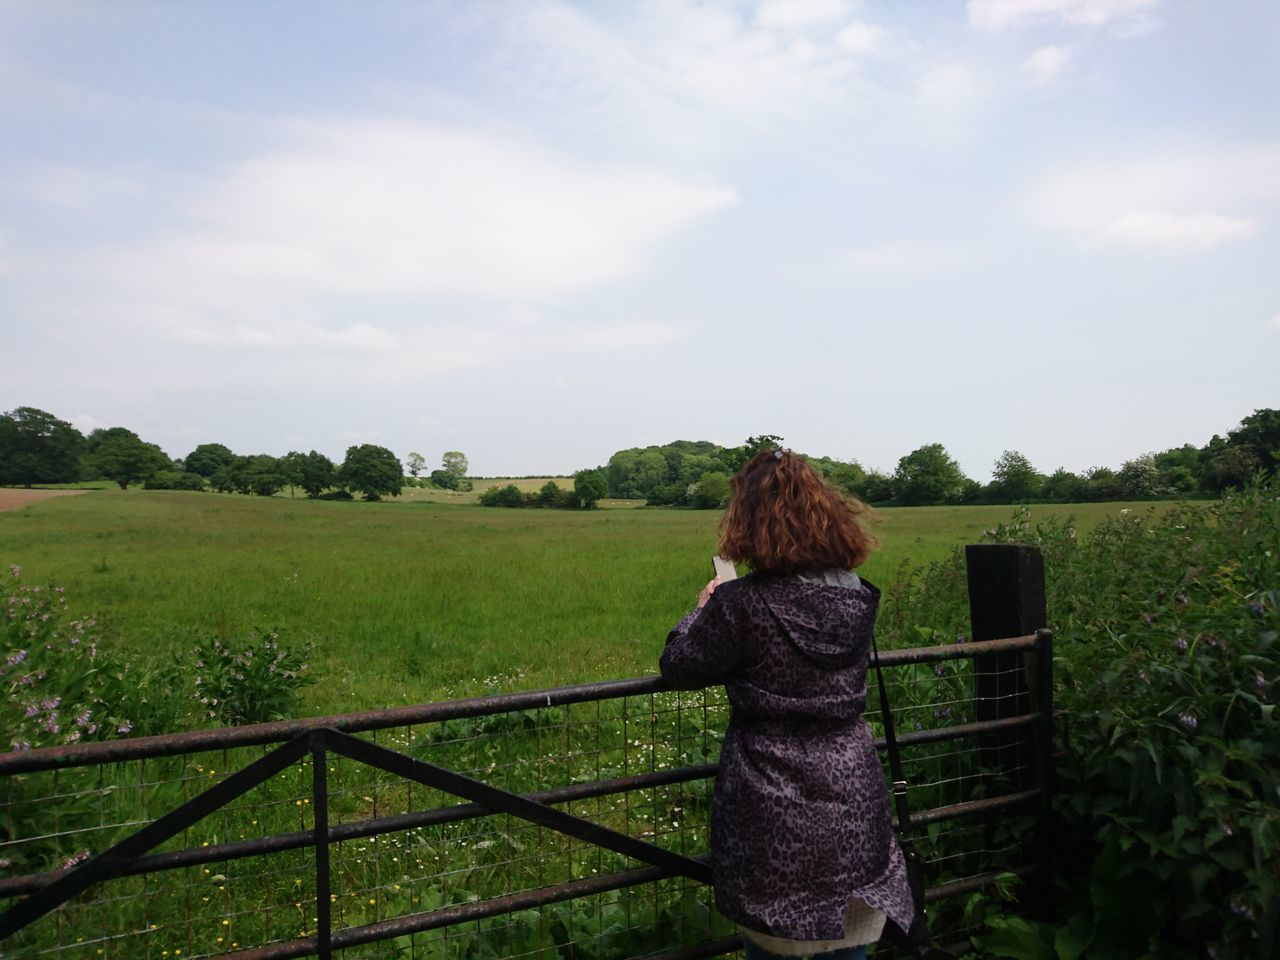 Casual Clothing Constablecountry Essex Field Fieldscape Flatford Mill Gate Gateway Grass Grassy Landscape Leisure Activity Lifestyles Nature Old People Outdoors Pensioner Remote Rural Scene Sheep Sky Solitude Suffolk Tranquility Tree